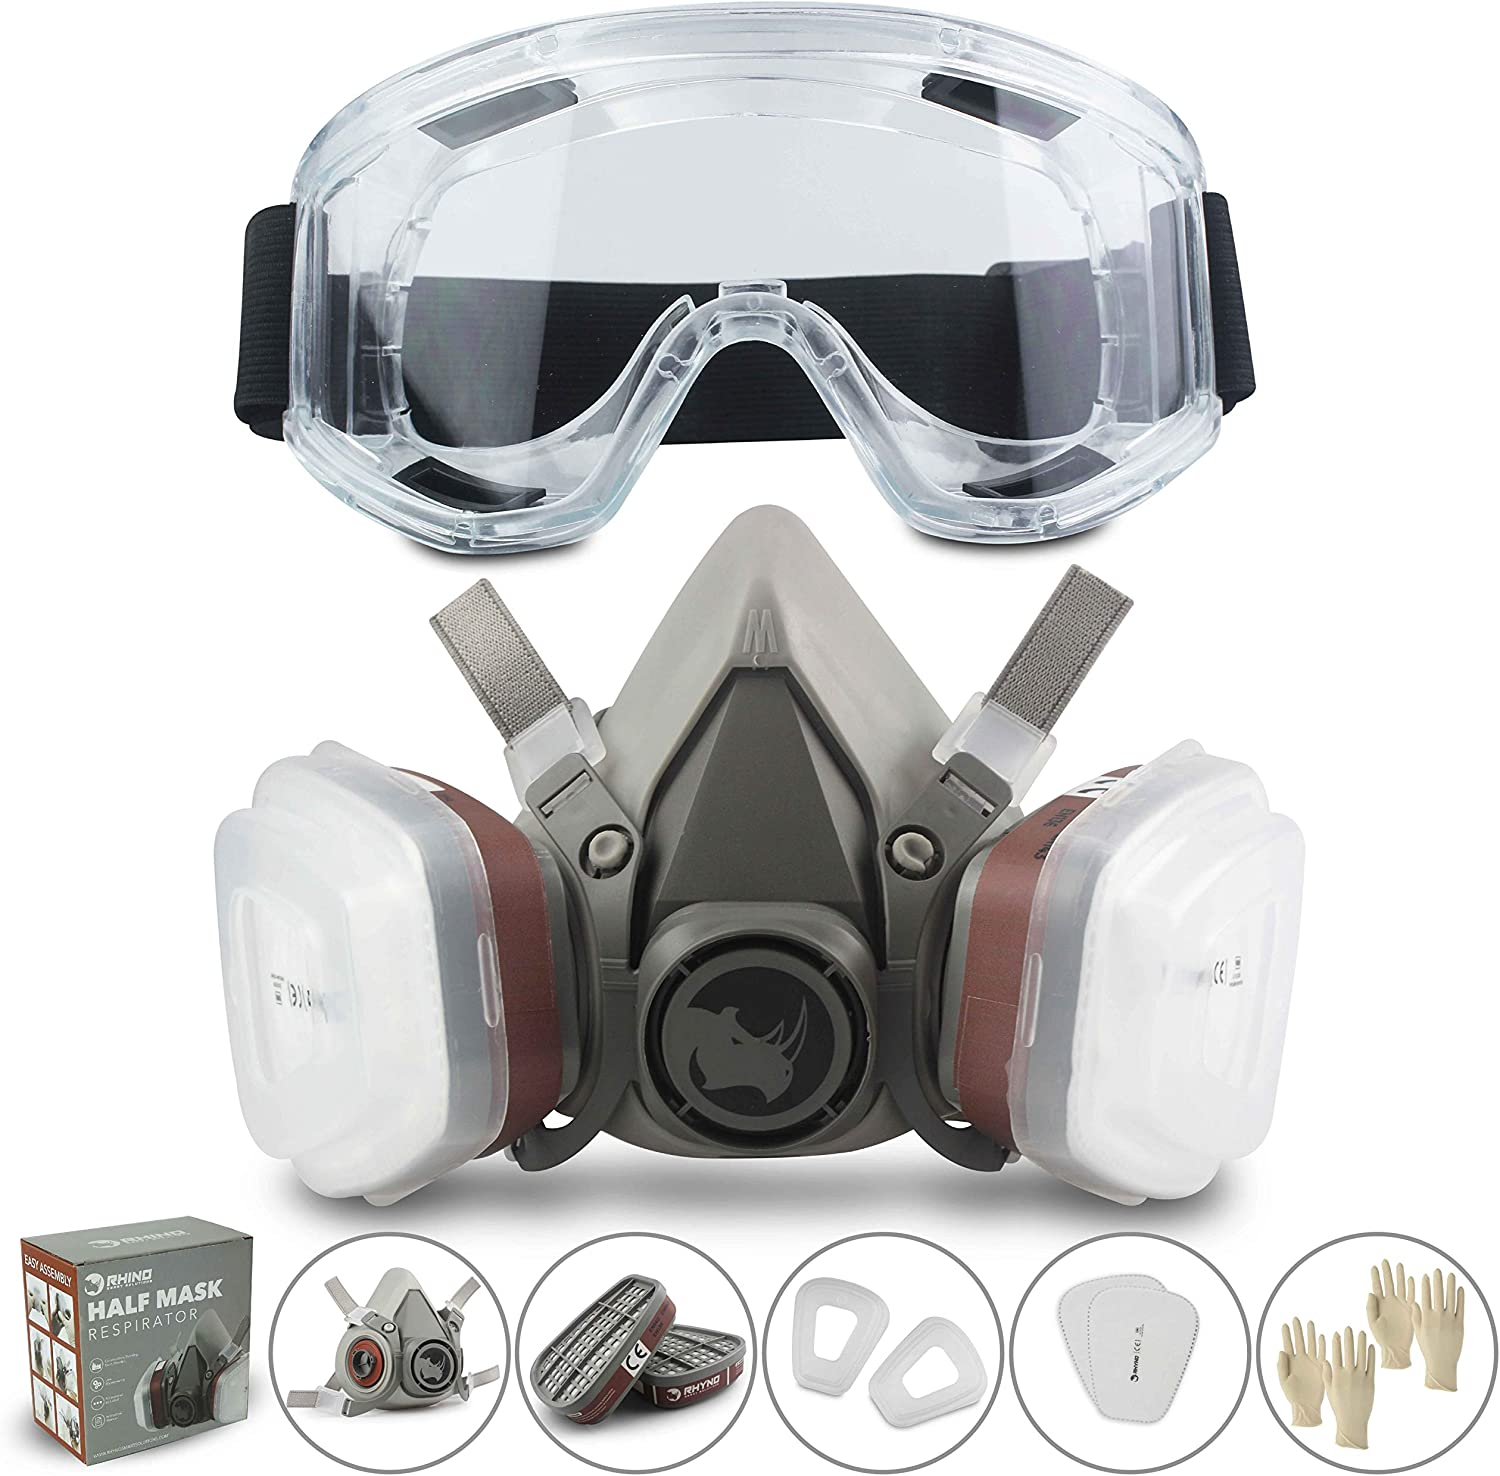 RSM Reusable Face Cover Set for Painting, Dust, Machine Polishing, Vapors with Filter Cotton, Glasses and Gloves for DIY and Other Work Protection